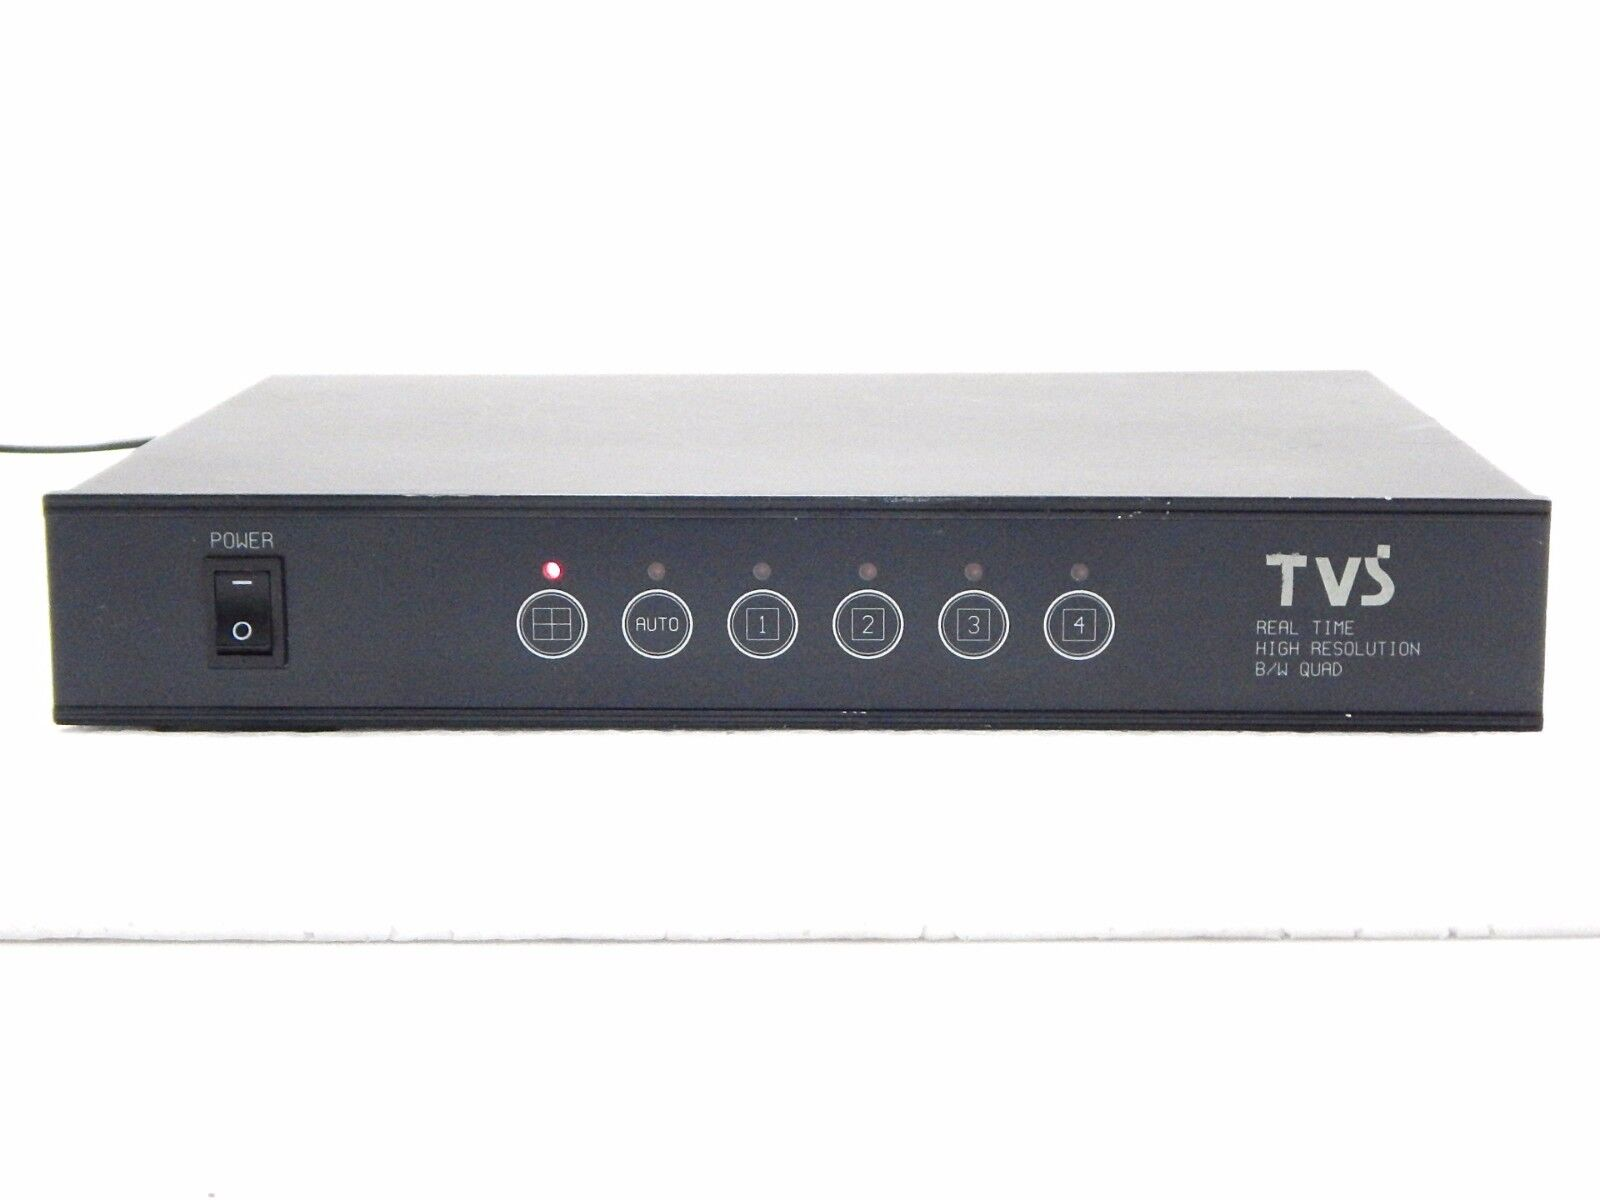 TVS Real Time High Resolution B/W Quad CCTV Video Processor AS-IS